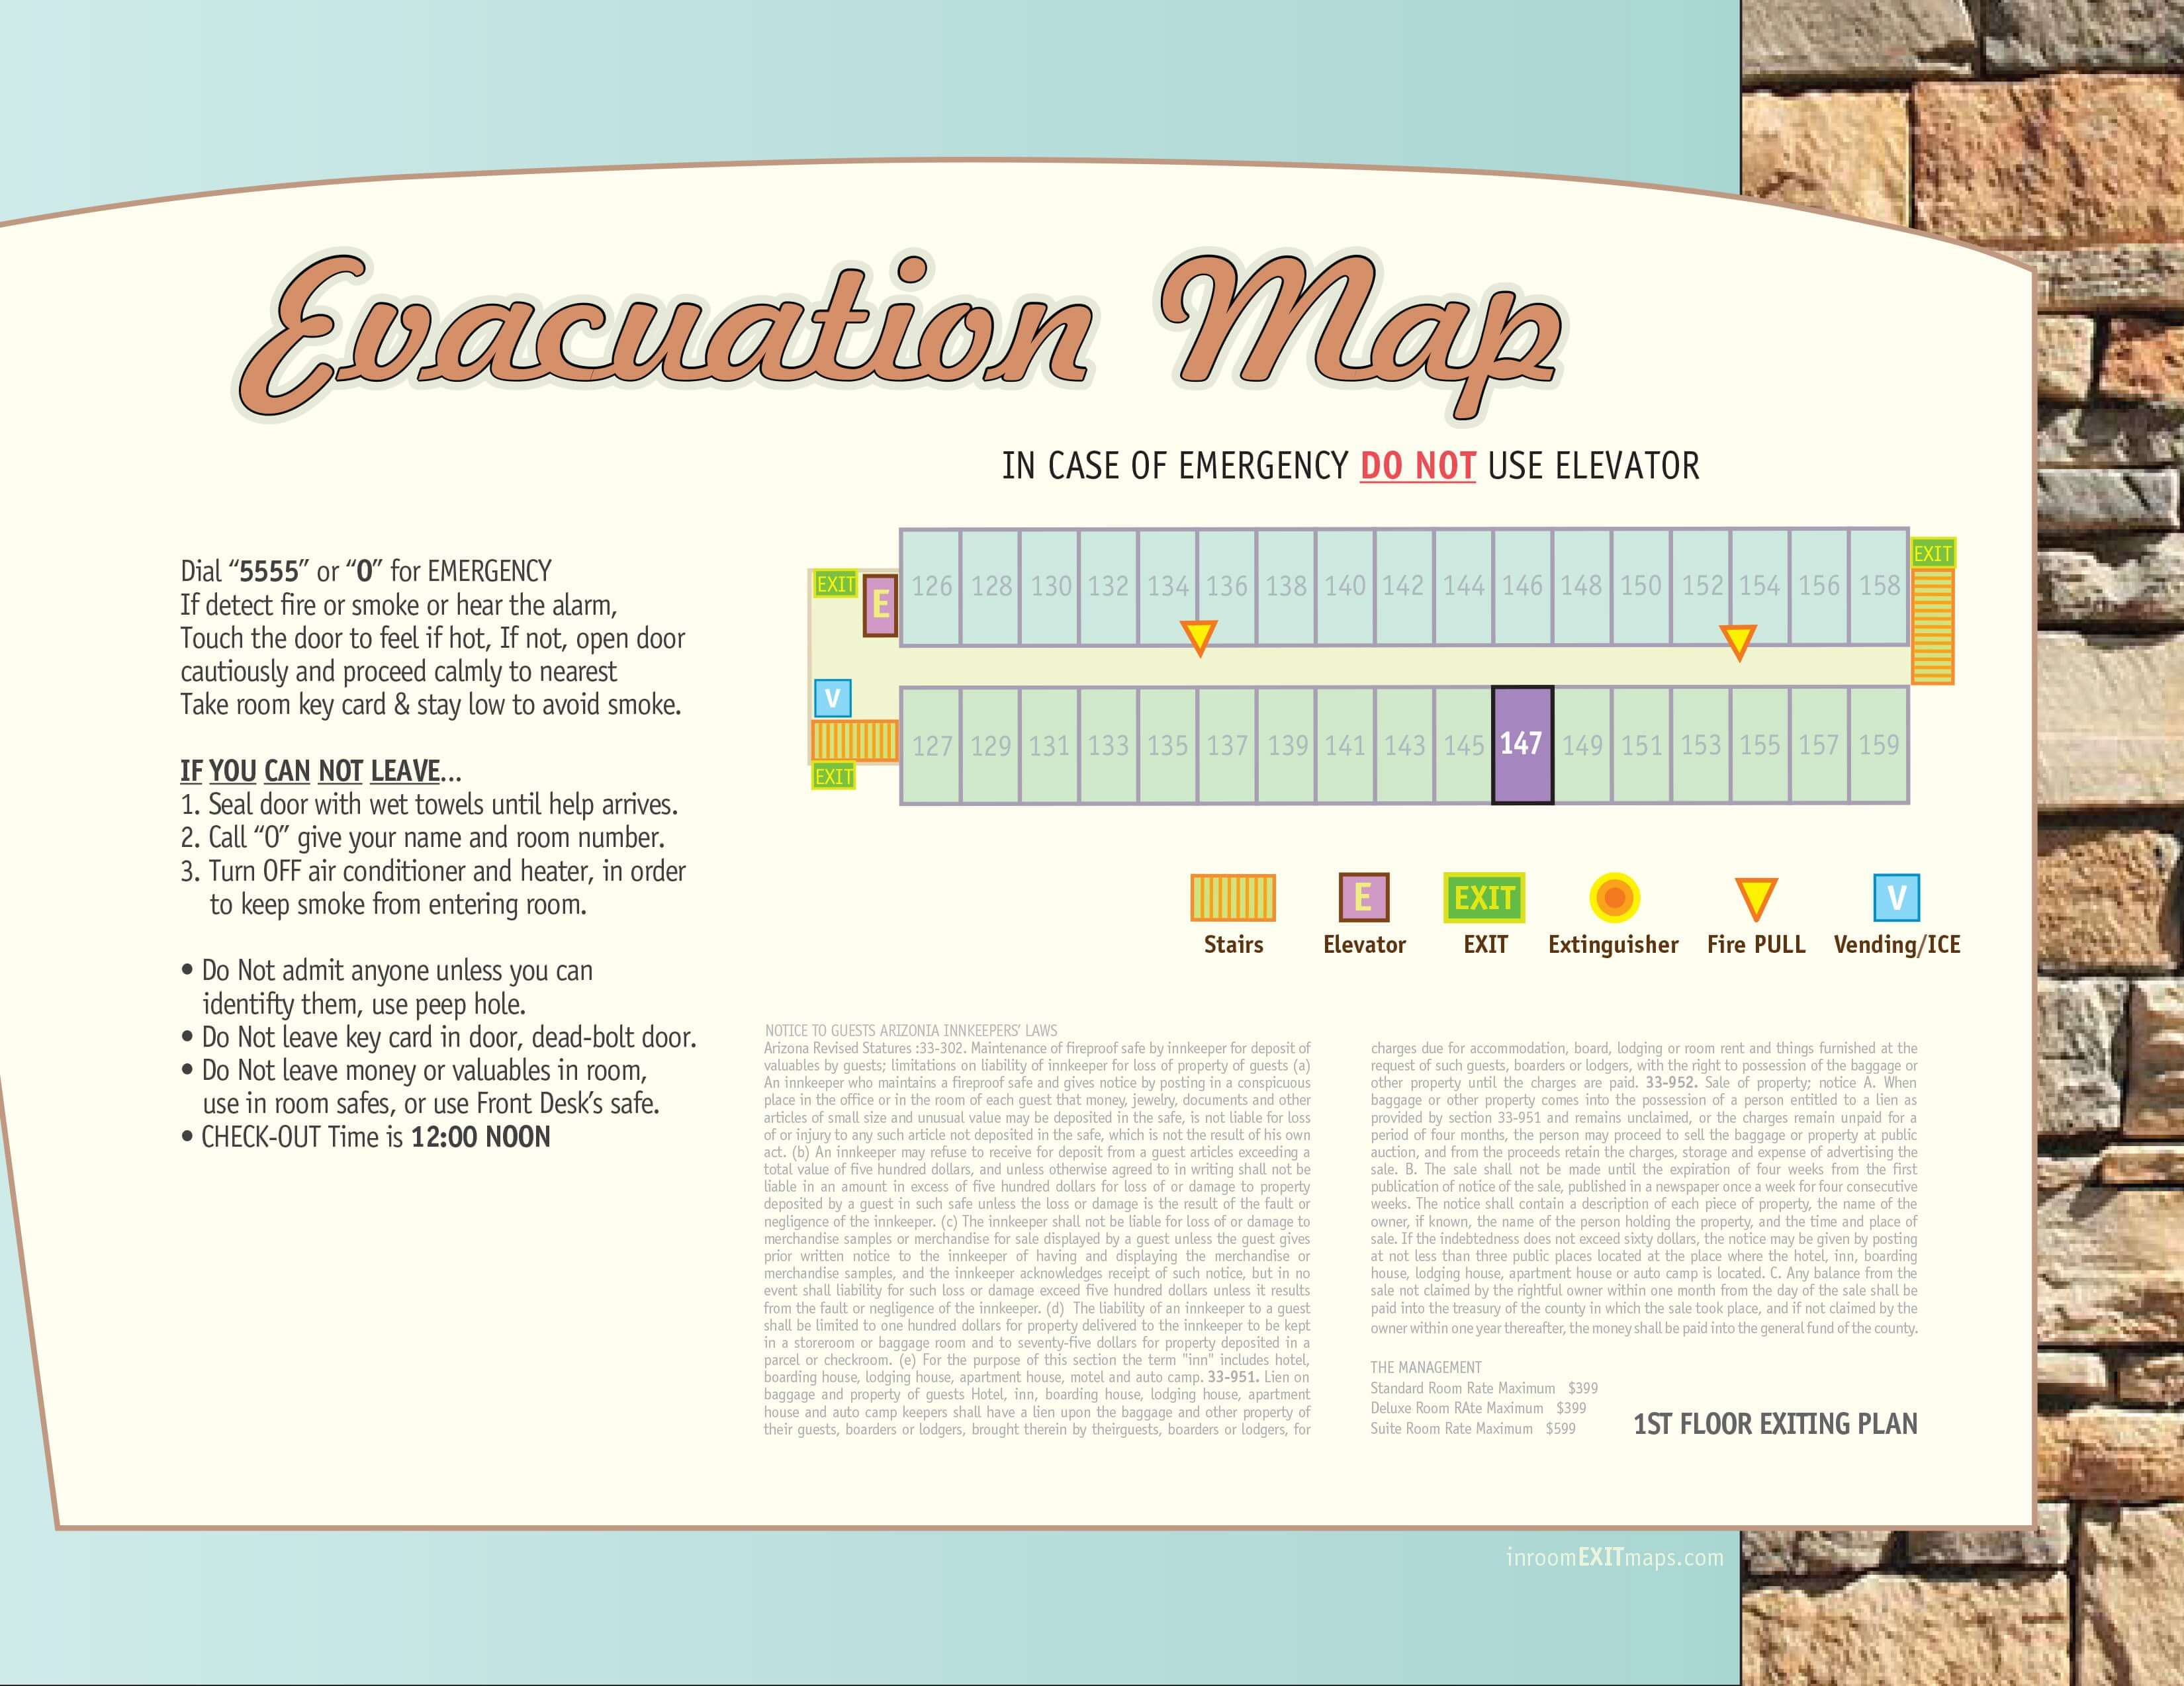 Arizona_147_Evacuation_Map